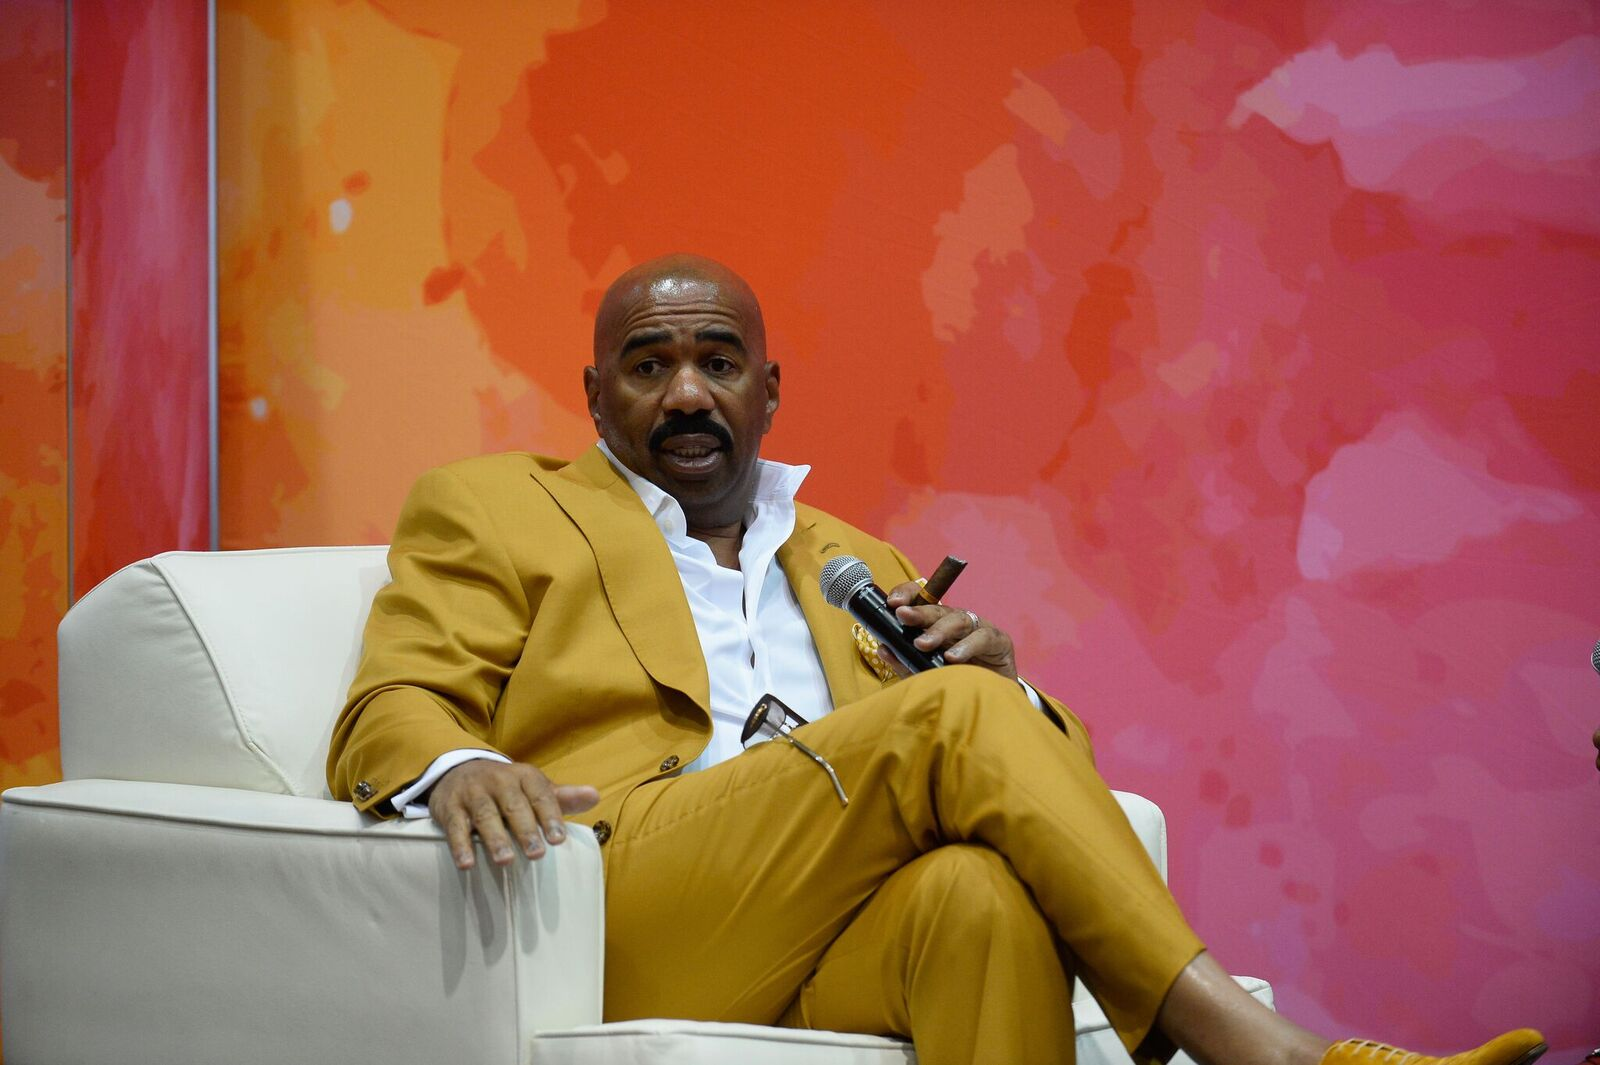 Television personality and host Steve Harvey speaks at the State Farm Color Full Lives Art Gallery during the 2016 State Farm Neighborhood Awards at Mandalay Bay Resort and Casino on July 22, 2016 | Photo: Getty Images